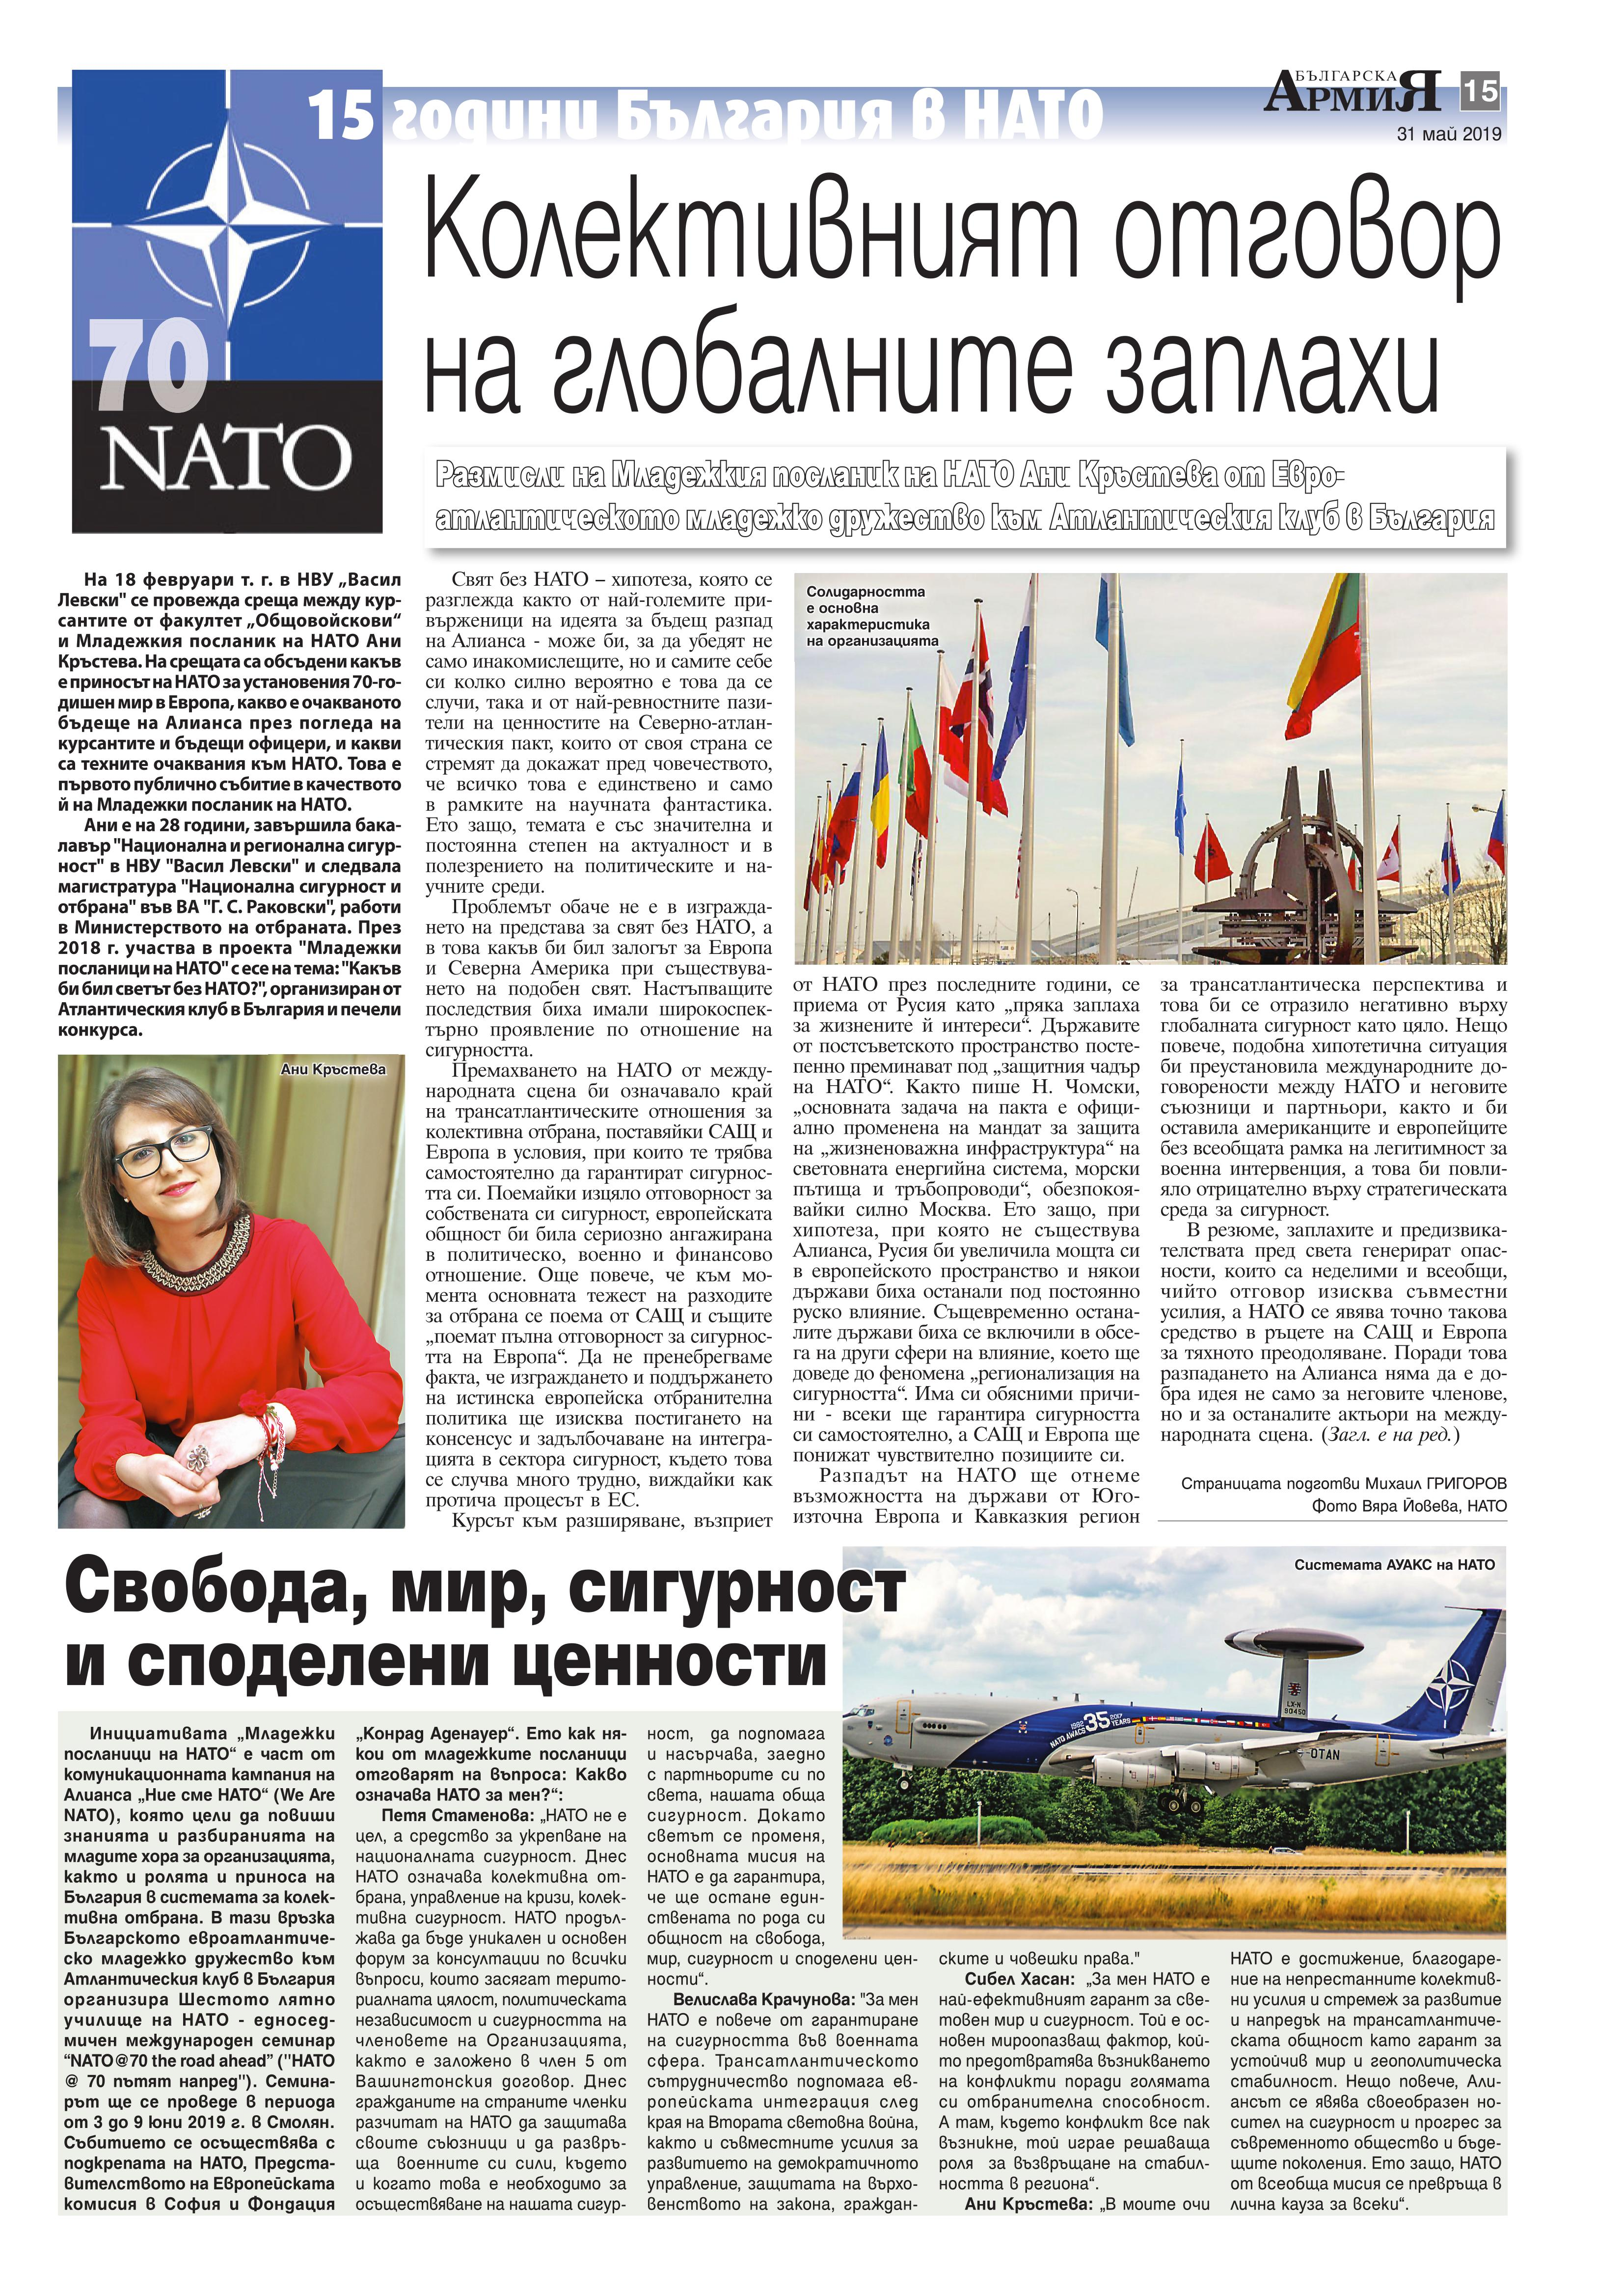 https://armymedia.bg/wp-content/uploads/2015/06/15.page1_-97.jpg